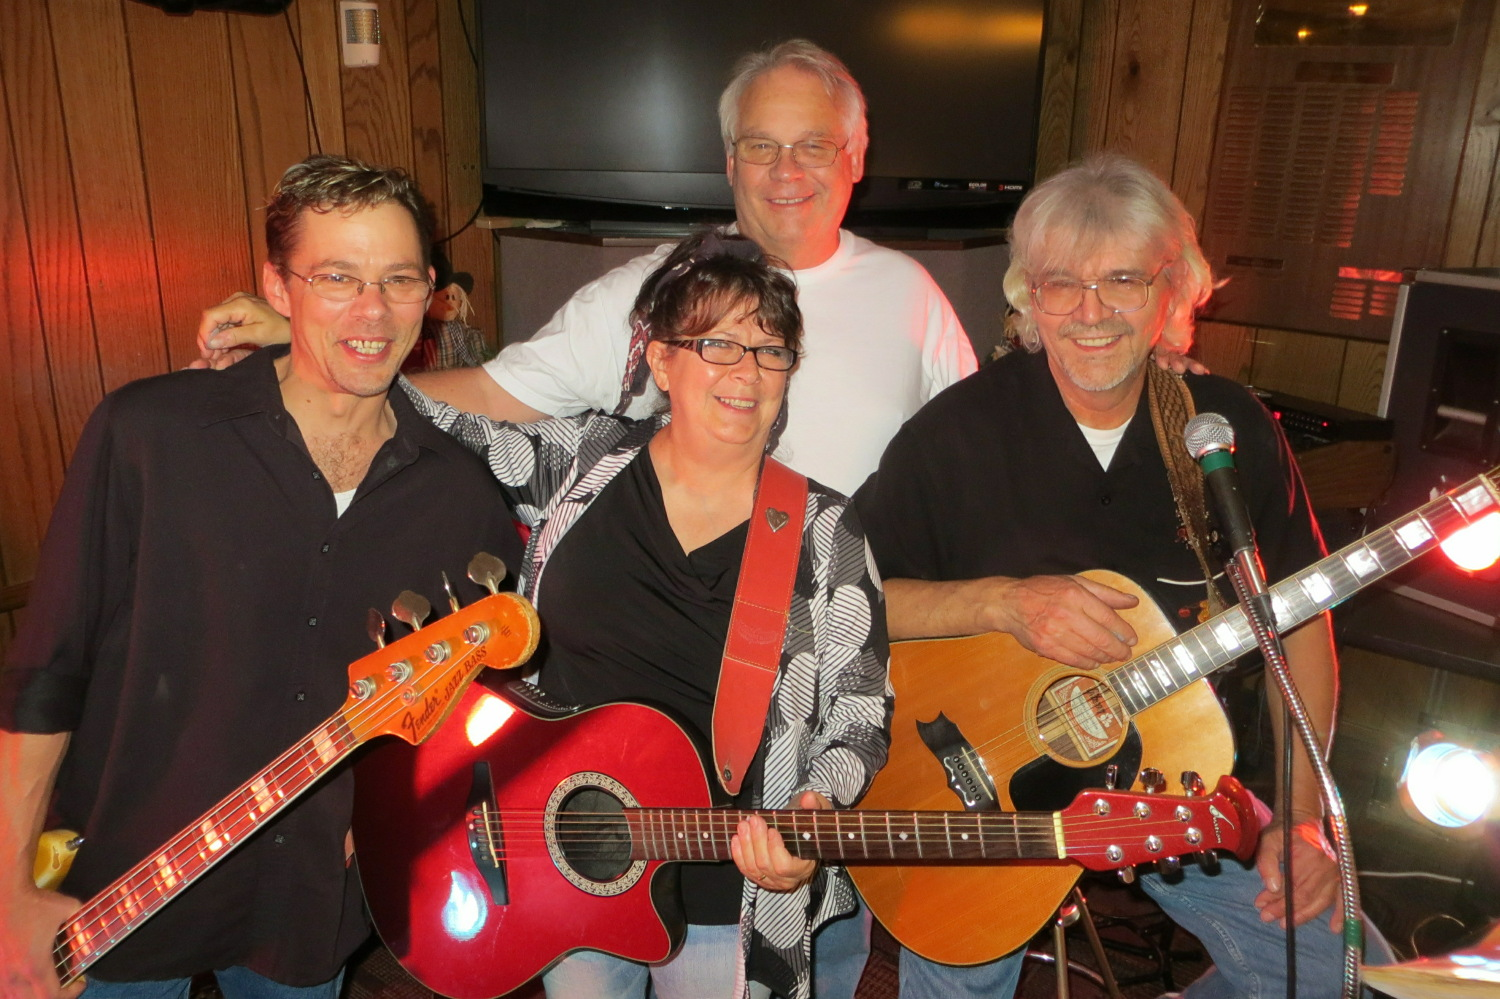 Live Music featuring Bob n' Judi Letheby & Friends at The Norfolk VFW in Norfolk, Nebraska - 